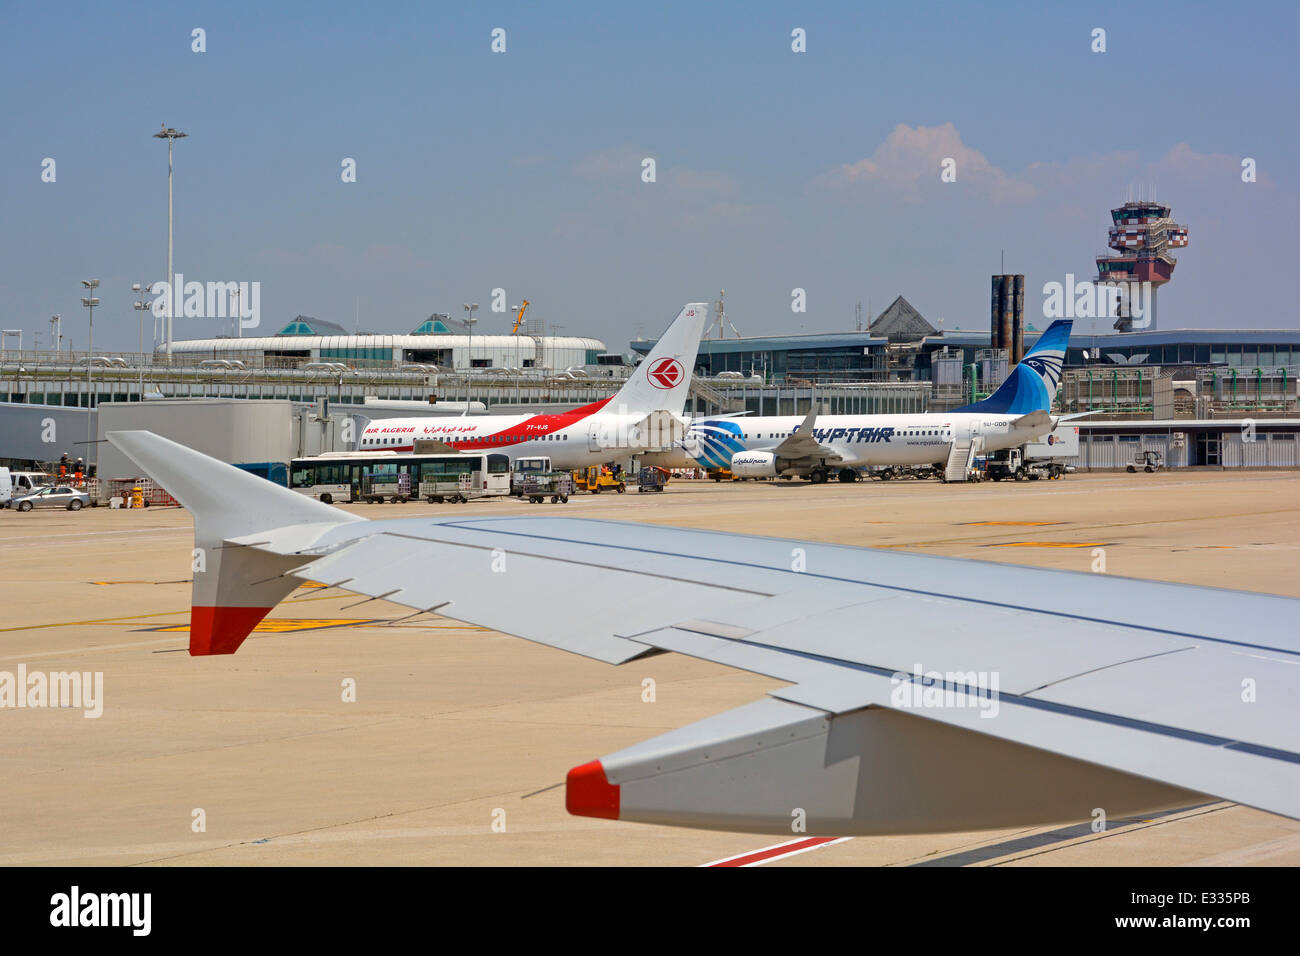 Passenger airplane taxiing out towards runway passing terminal buildings and control tower - Stock Image